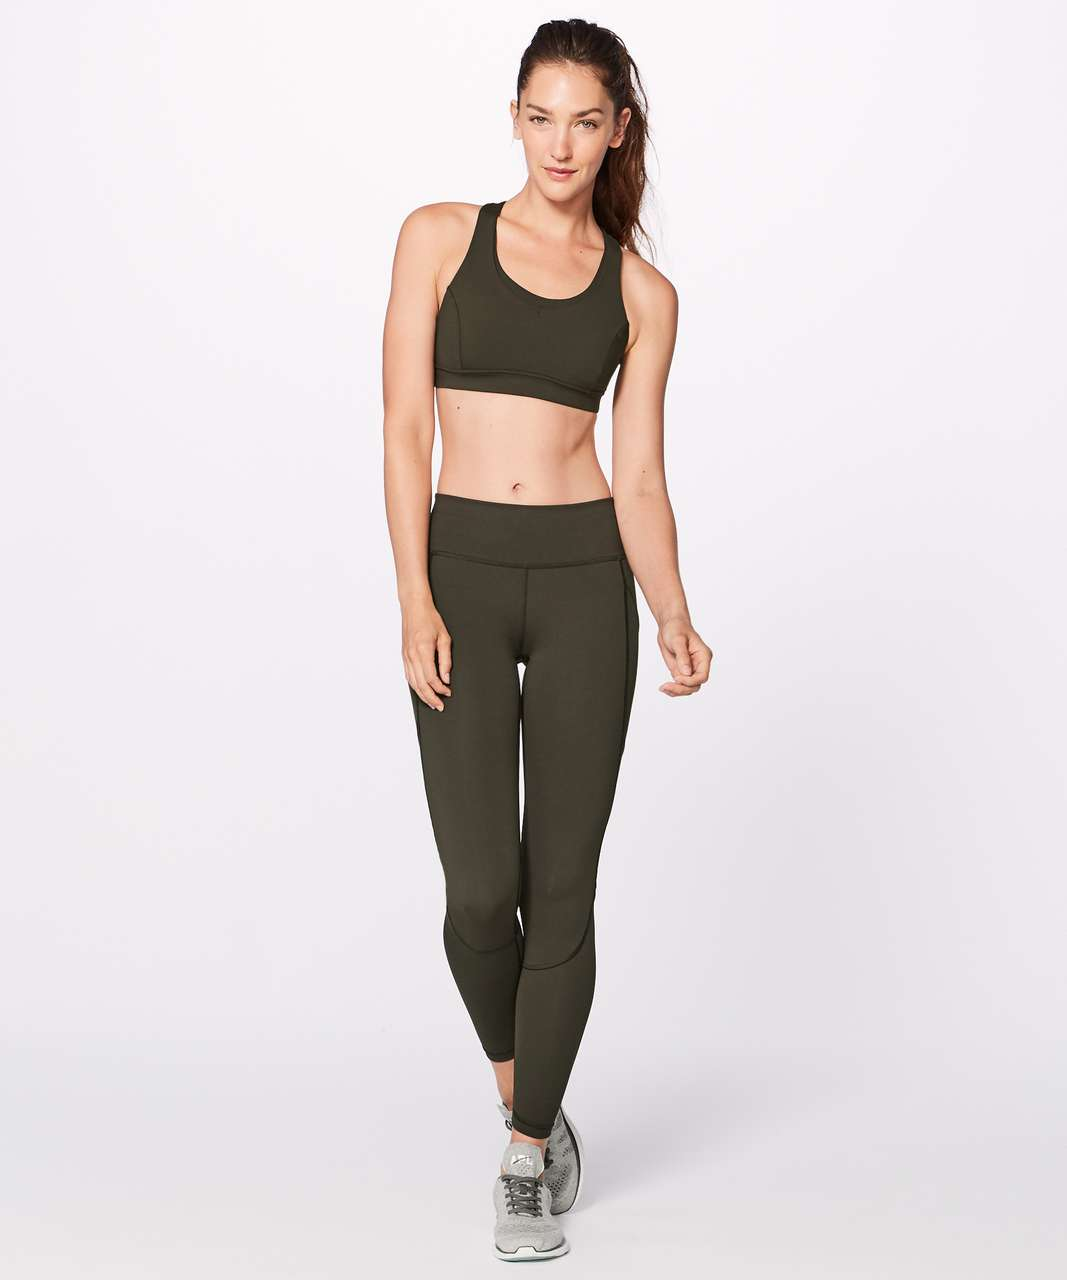 332392b27ff72 Lululemon Run On Bra - Dark Olive - lulu fanatics